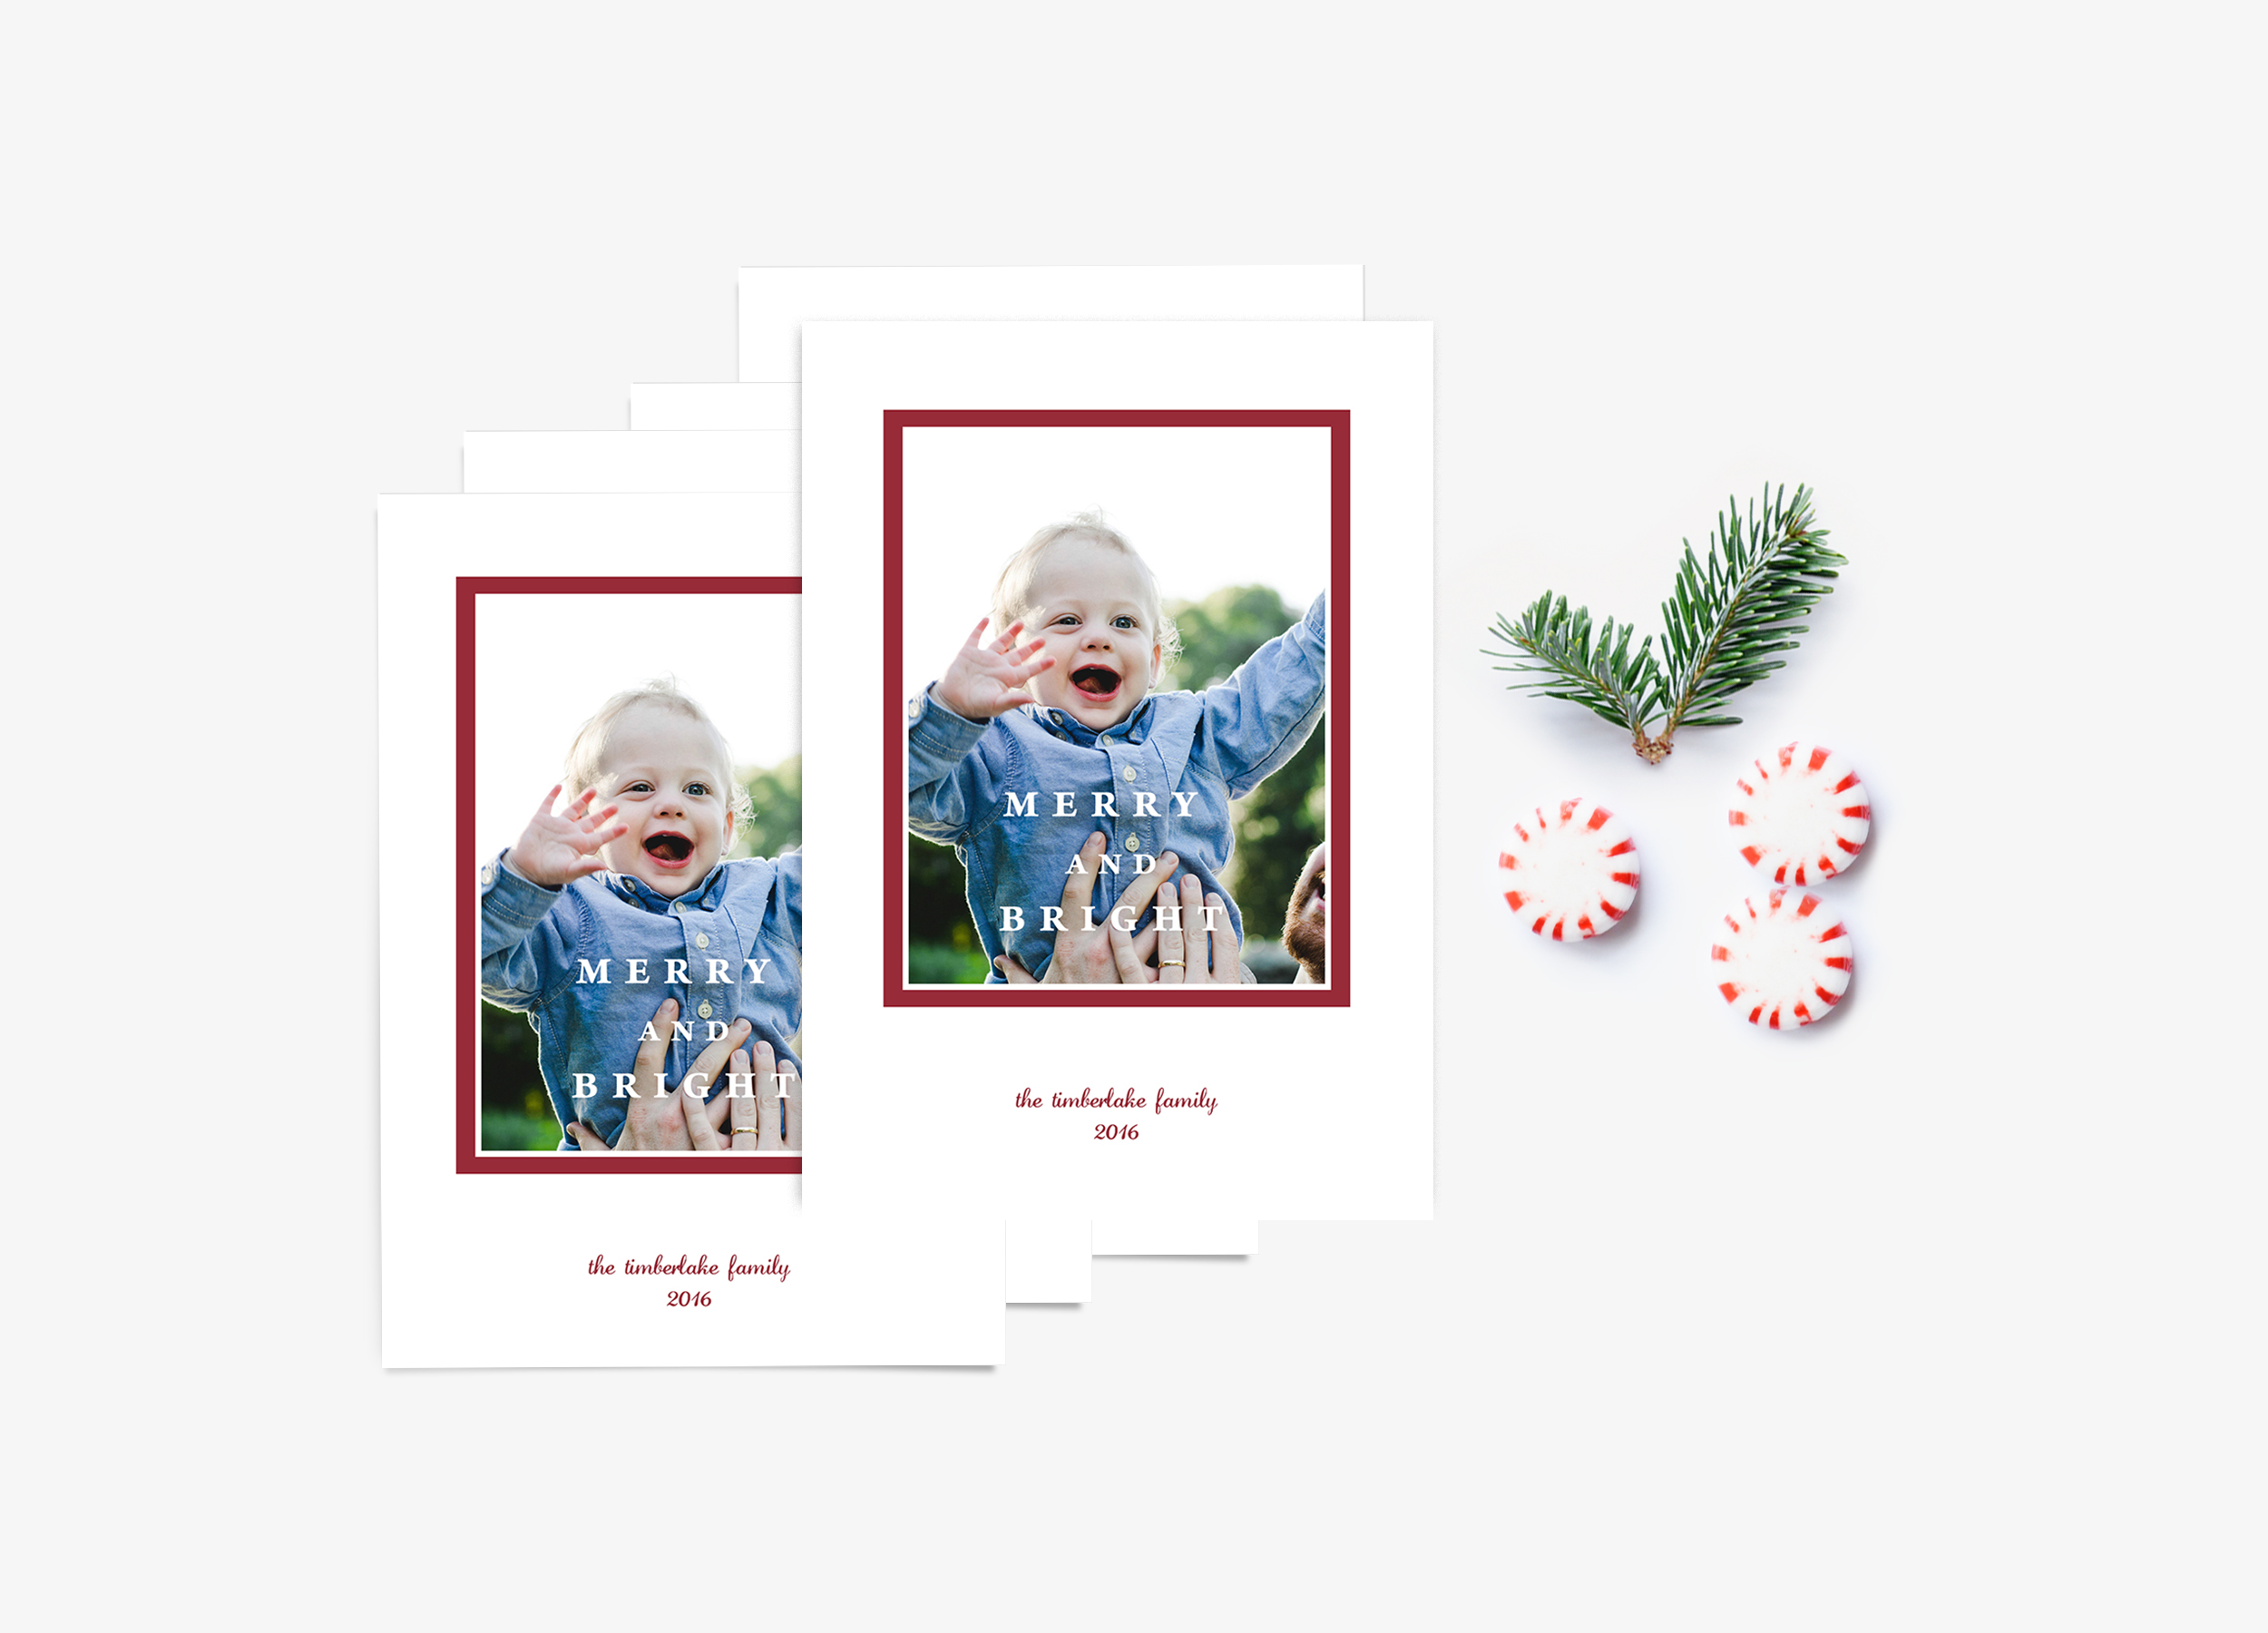 2016ChristmasCards_Design4_FINAL.jpg